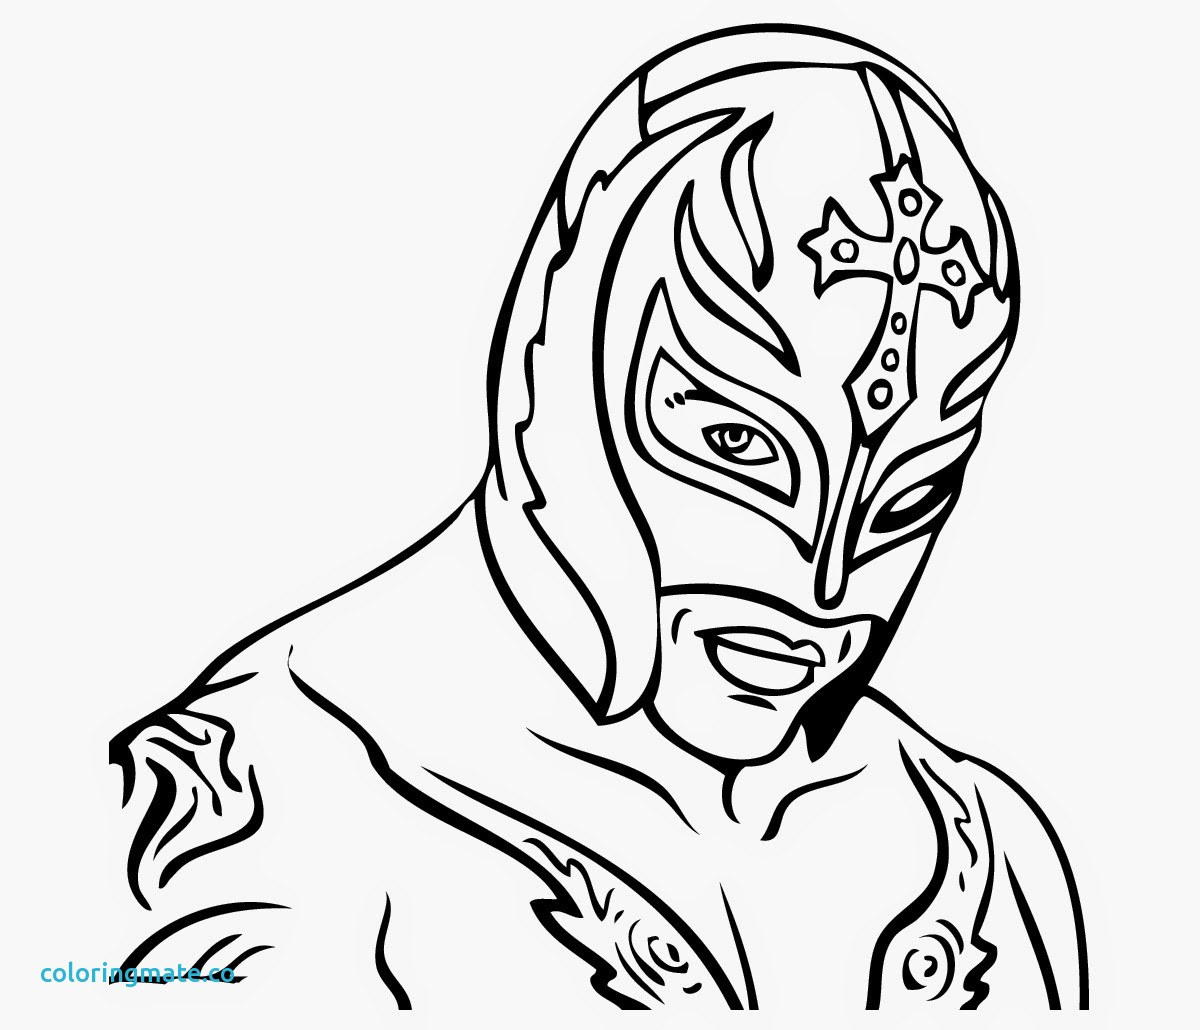 1200x1030 Wwe Coloring Pages Elegant Free Coloring Pages Of Rey Mysterio